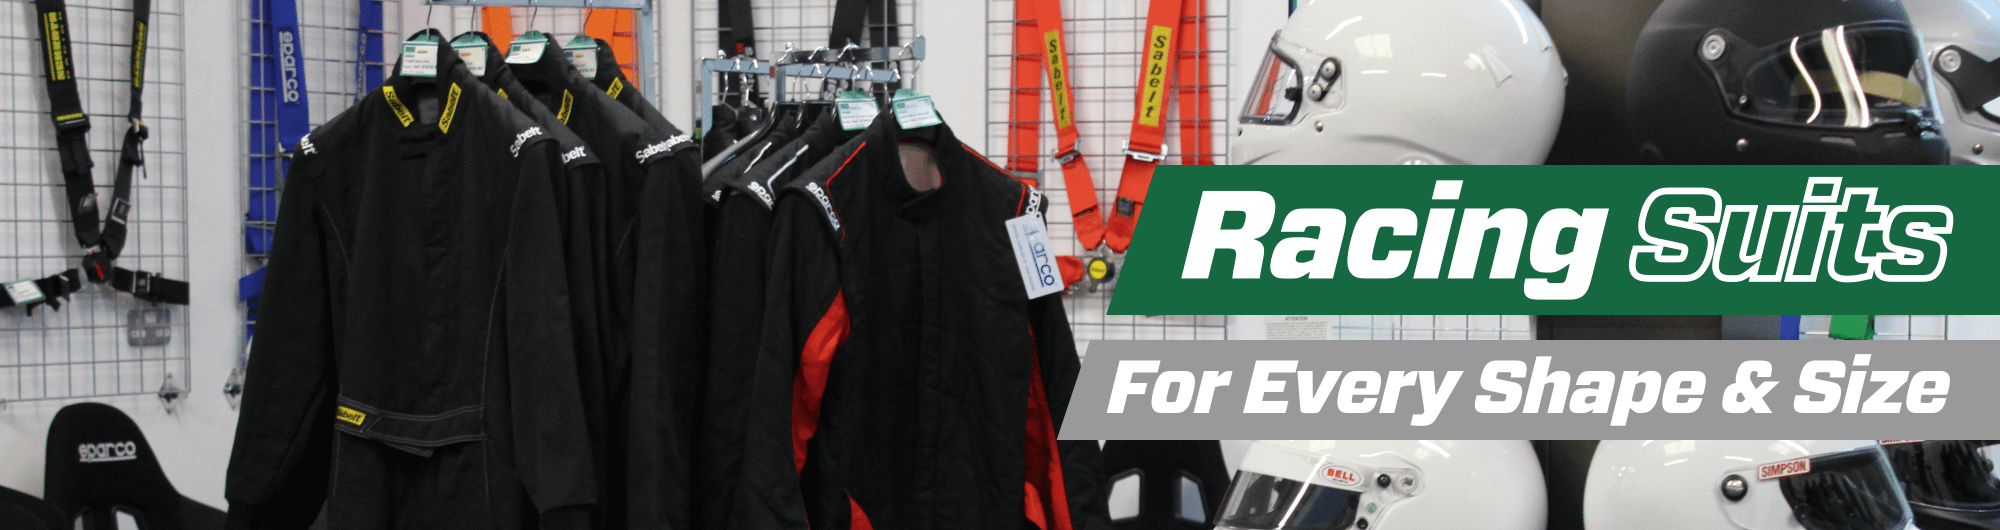 Racing Suits -For Every Shape & Size – www.gsmperformance.co.uk Hero Image – October 2017